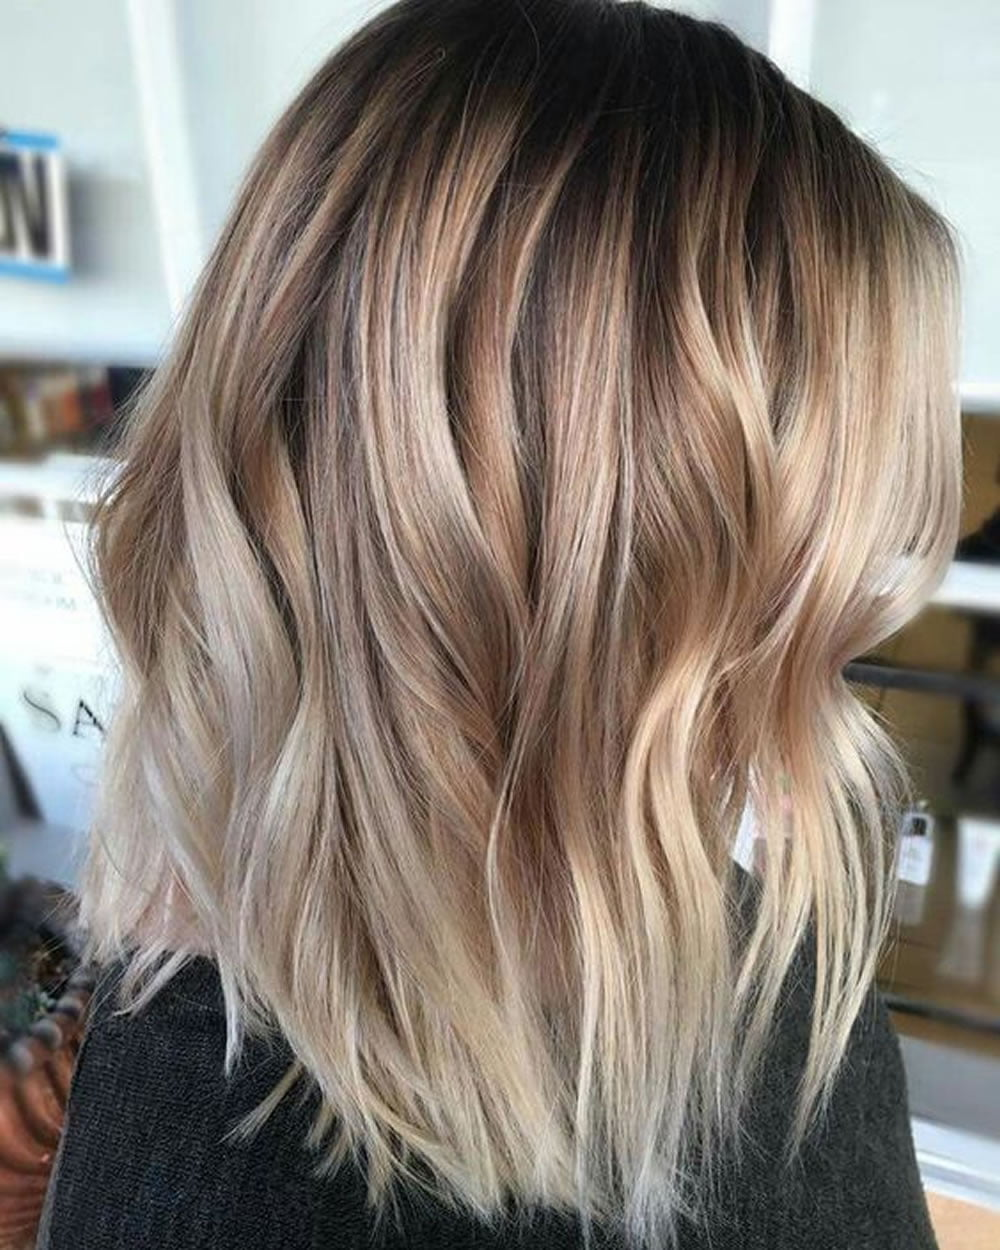 balayage ombre highlights 2018 dark brunette blonde etc hair ideas hairstyles. Black Bedroom Furniture Sets. Home Design Ideas